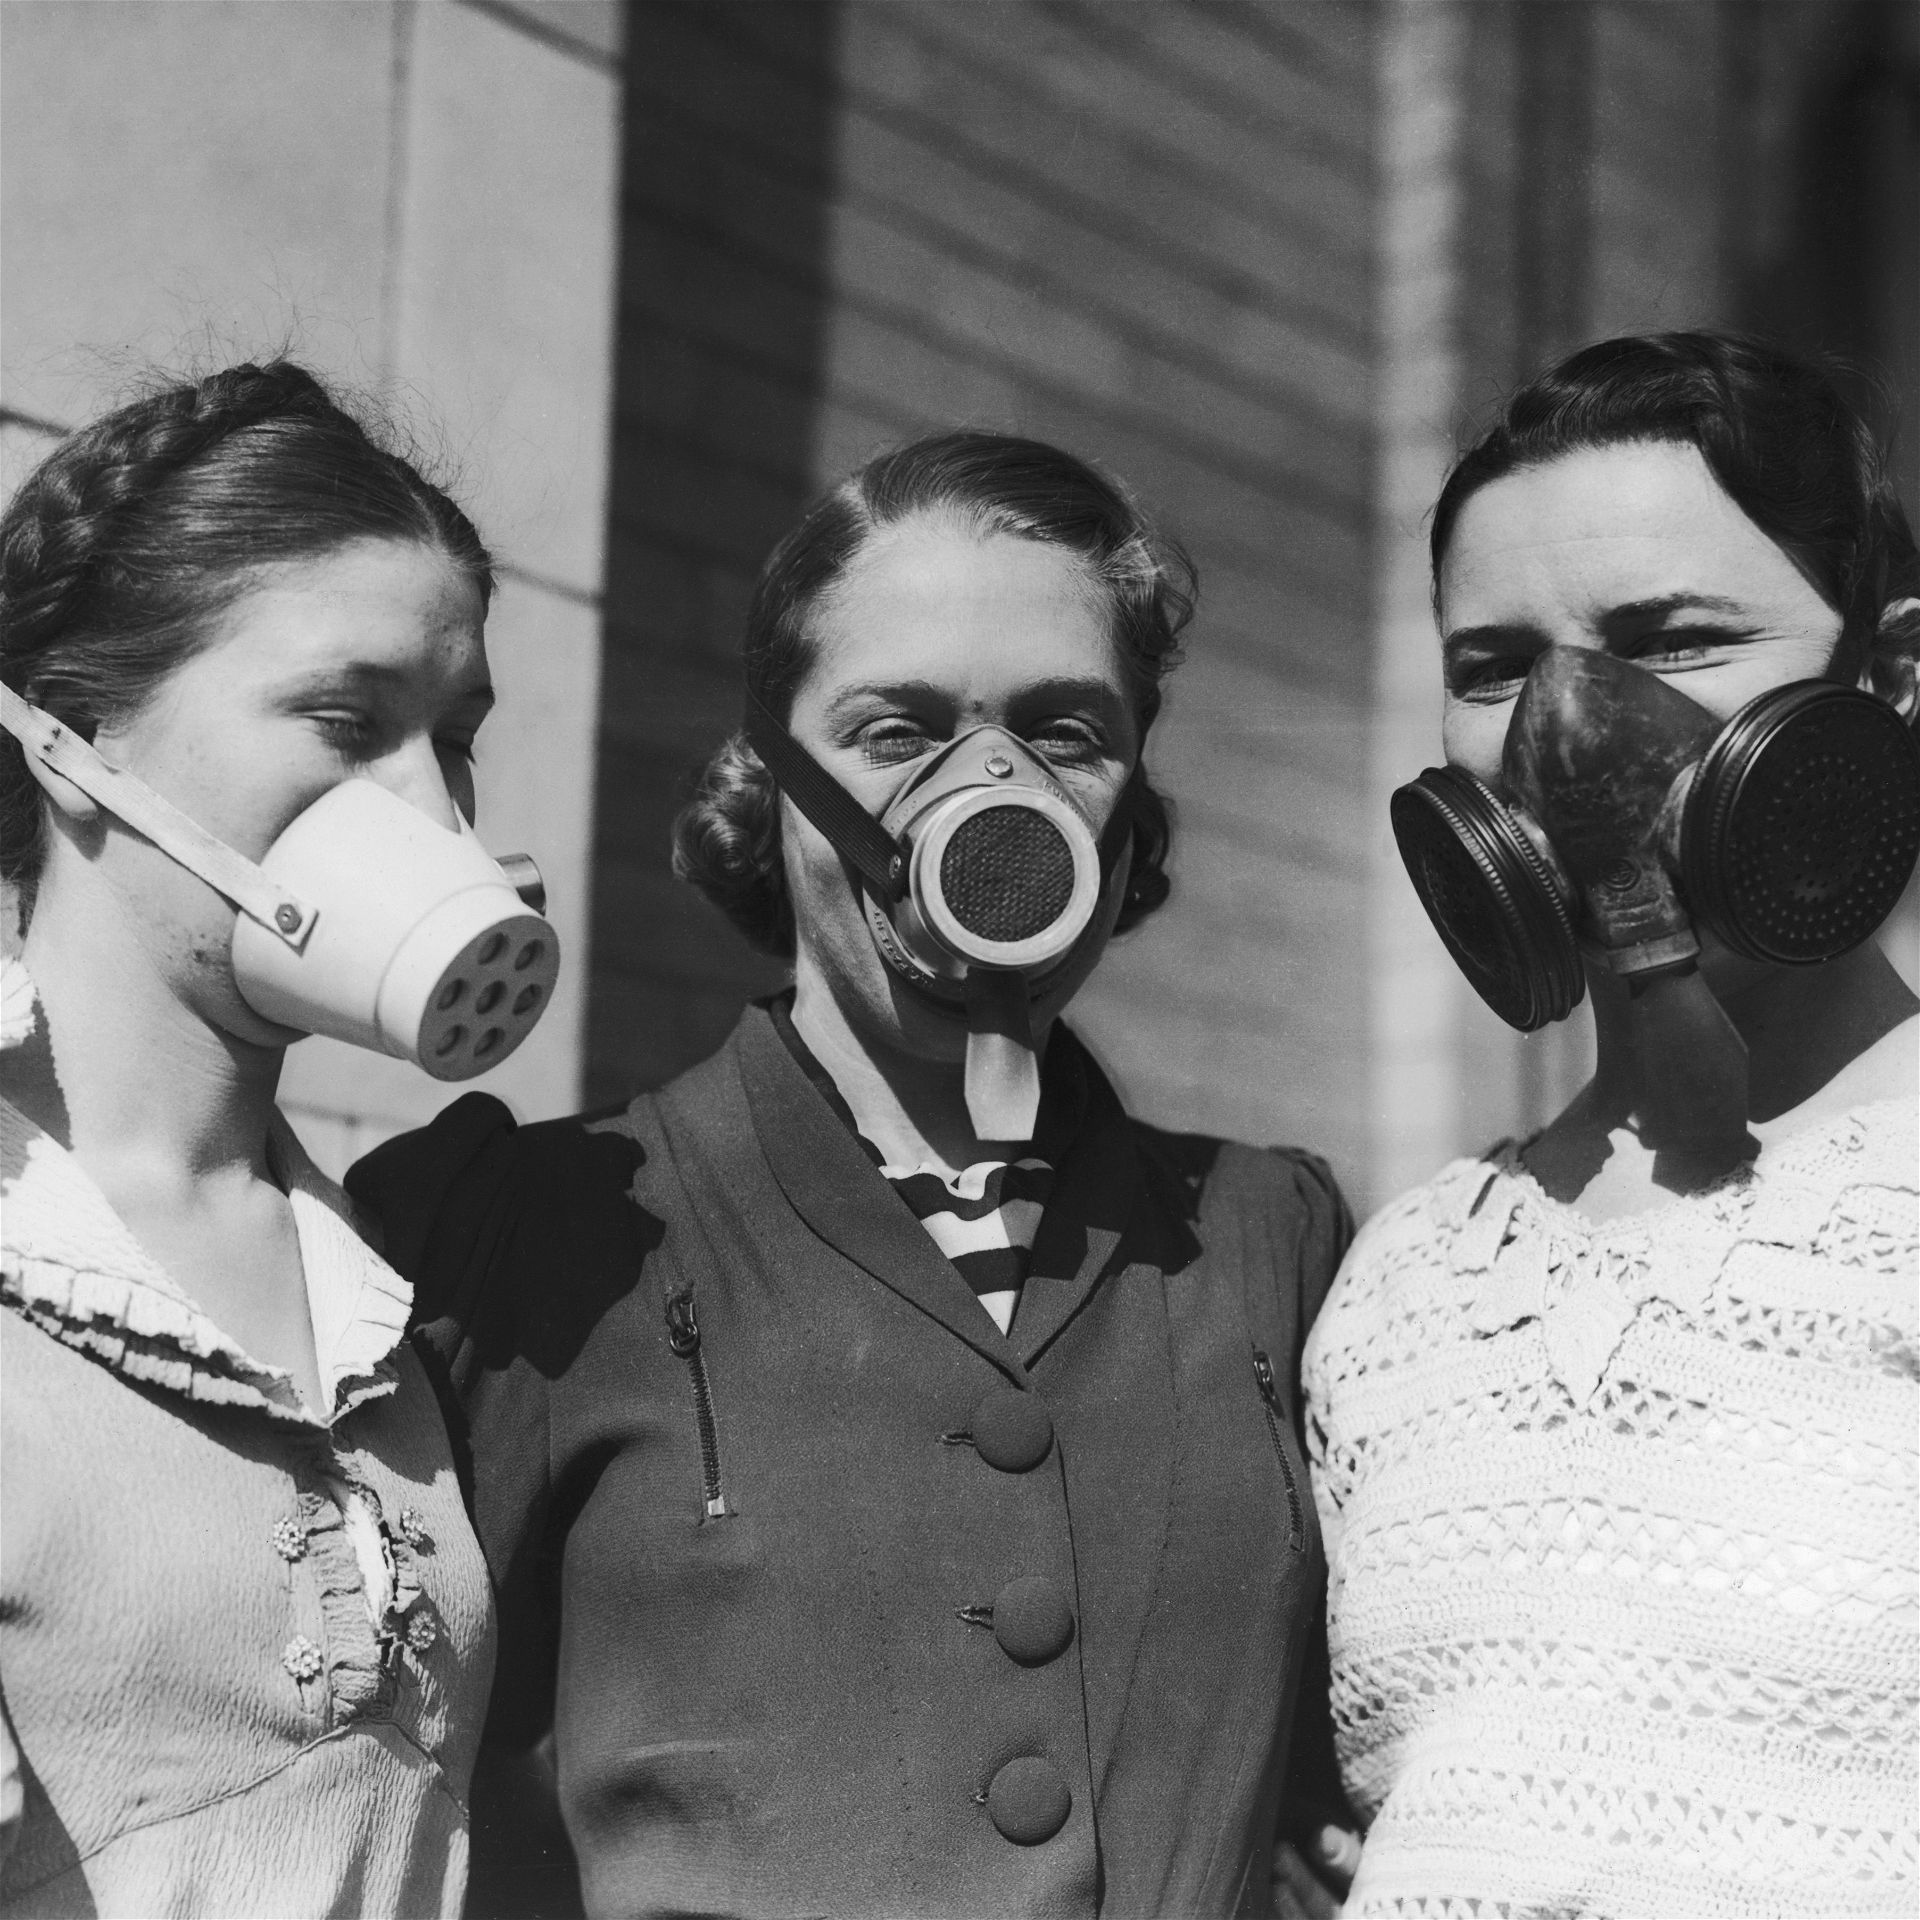 Dust Masks Worn During The Dust Bowl